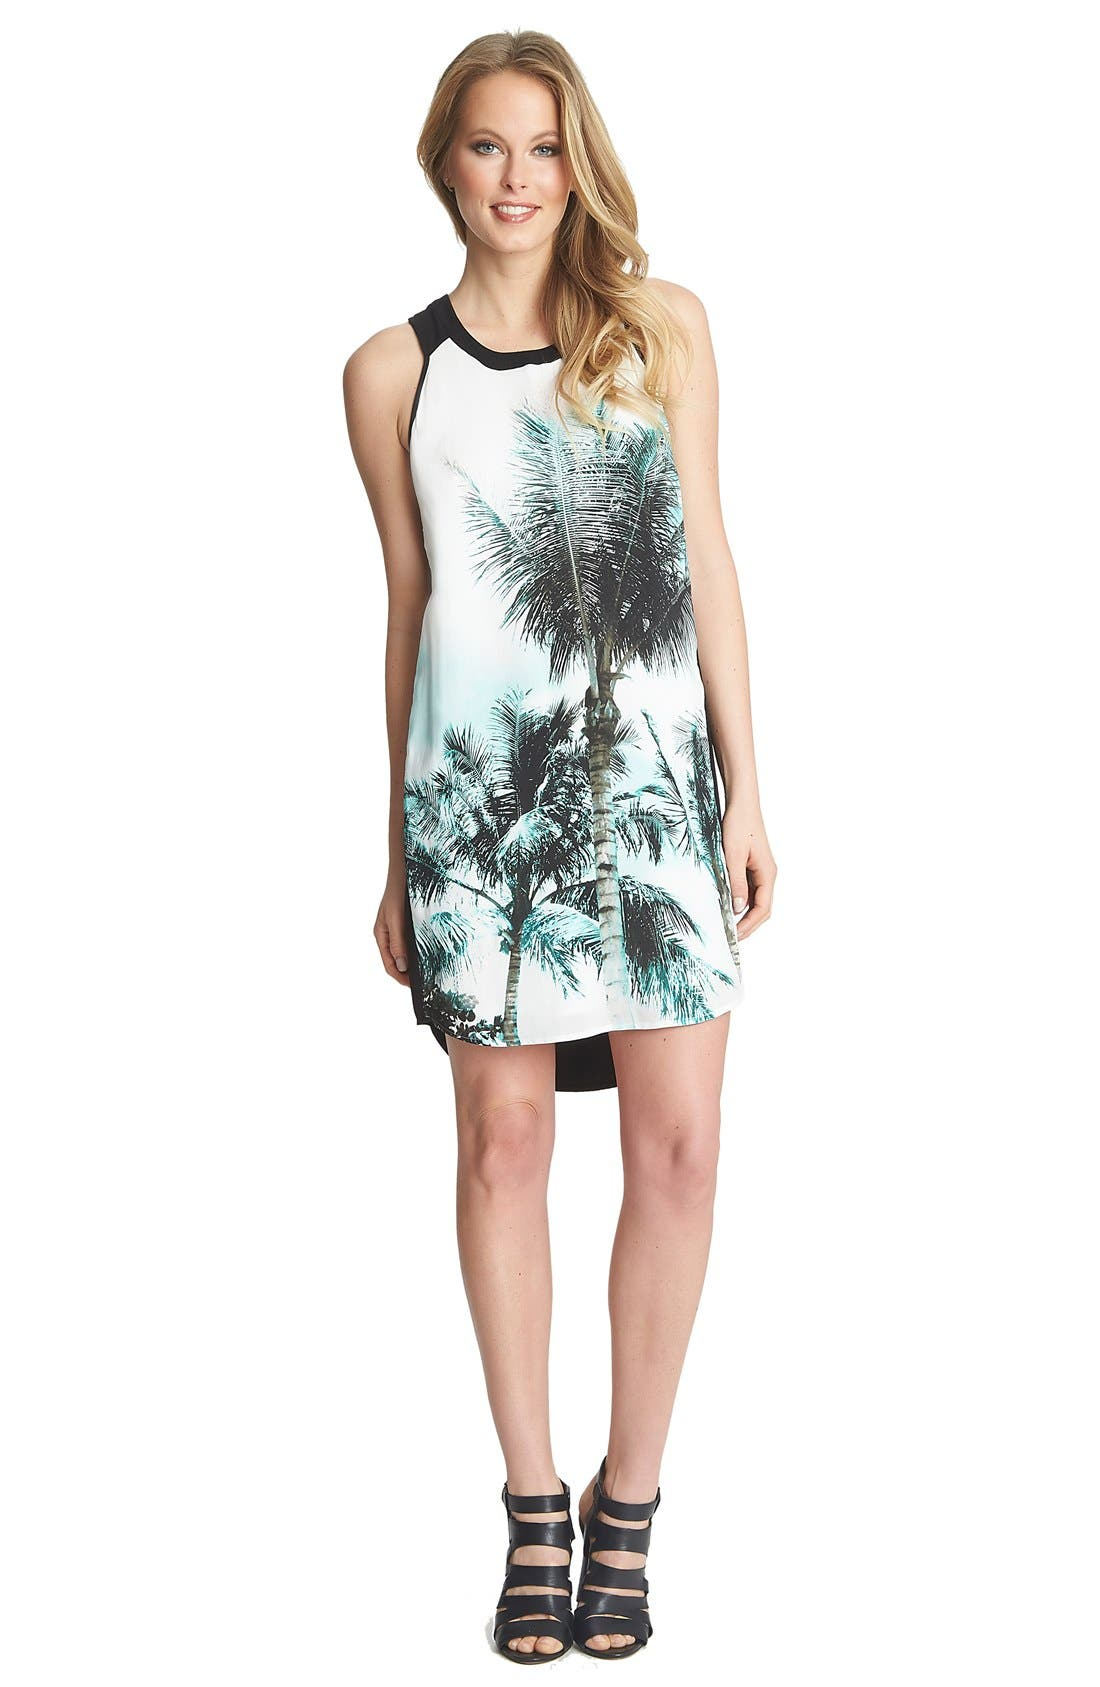 Alternate Image 1 Selected - 1.STATE 'Palm Whimsy' Sleeveless Shift Dress